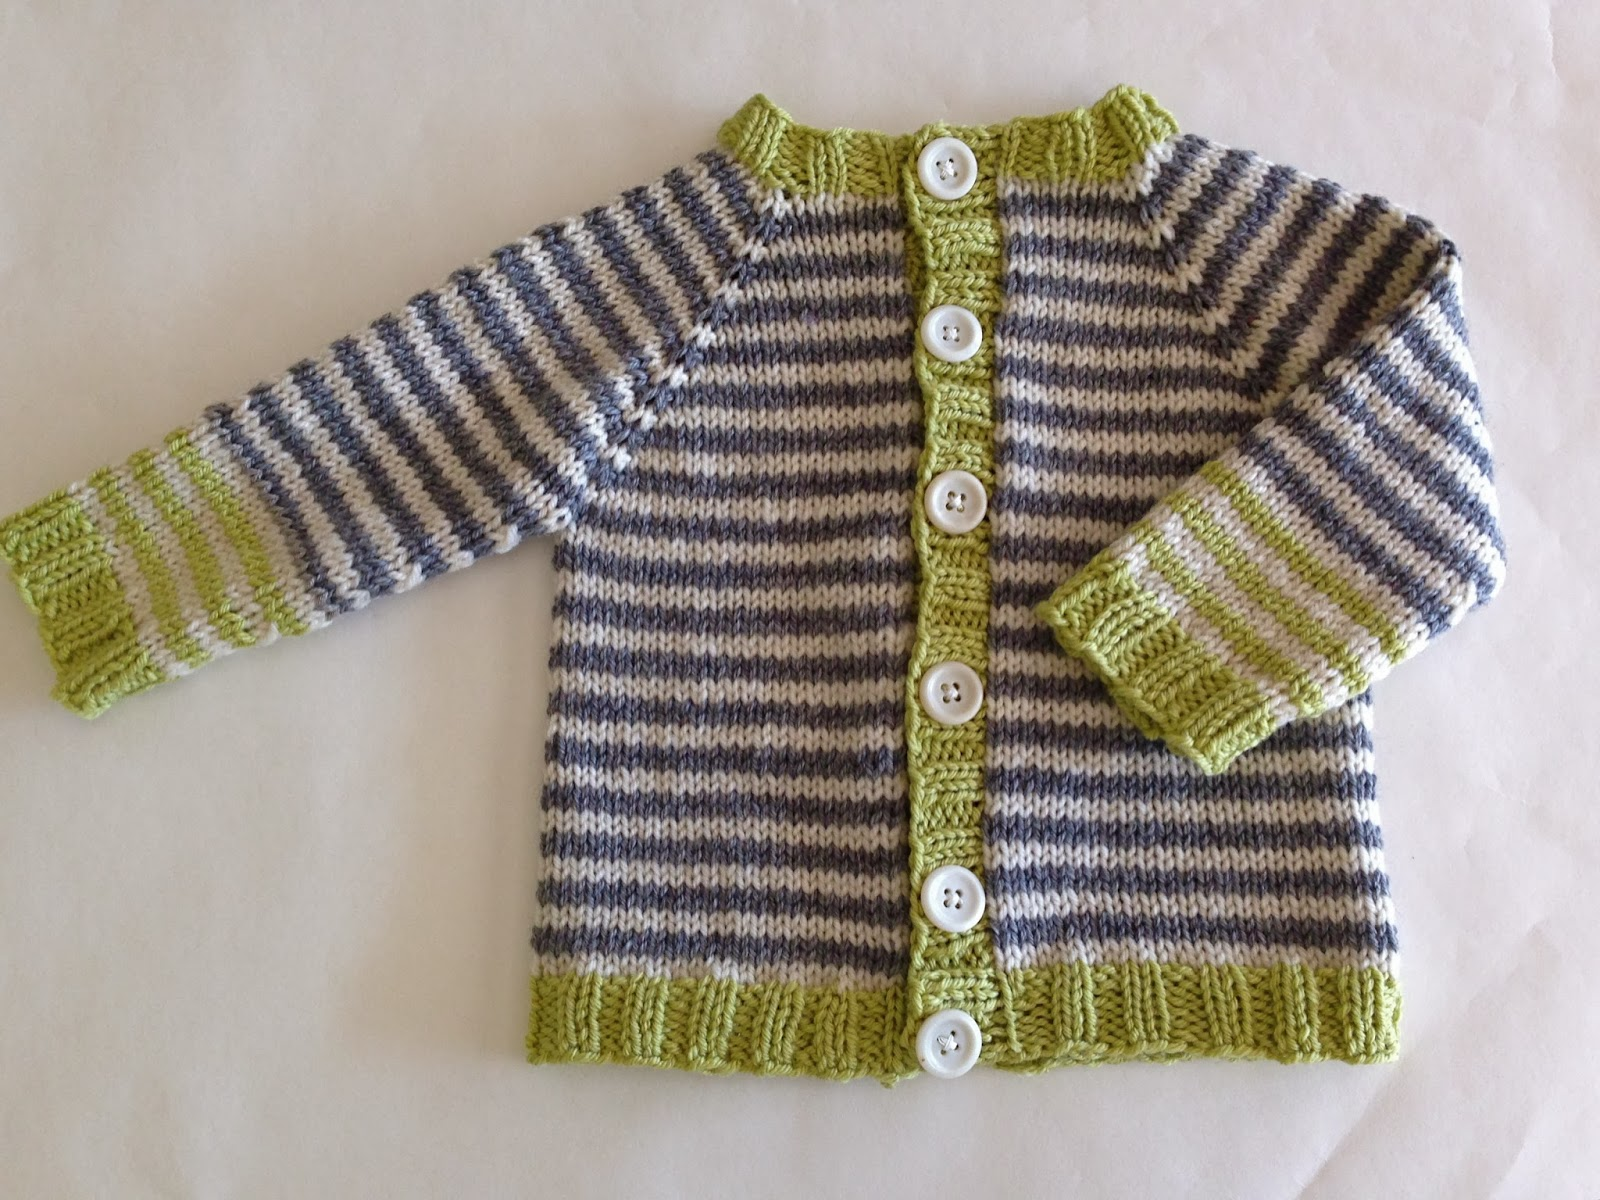 Knitting Pattern For Toddler Raglan Sweater : totally free/totally adorable baby cardigan - Knitionary